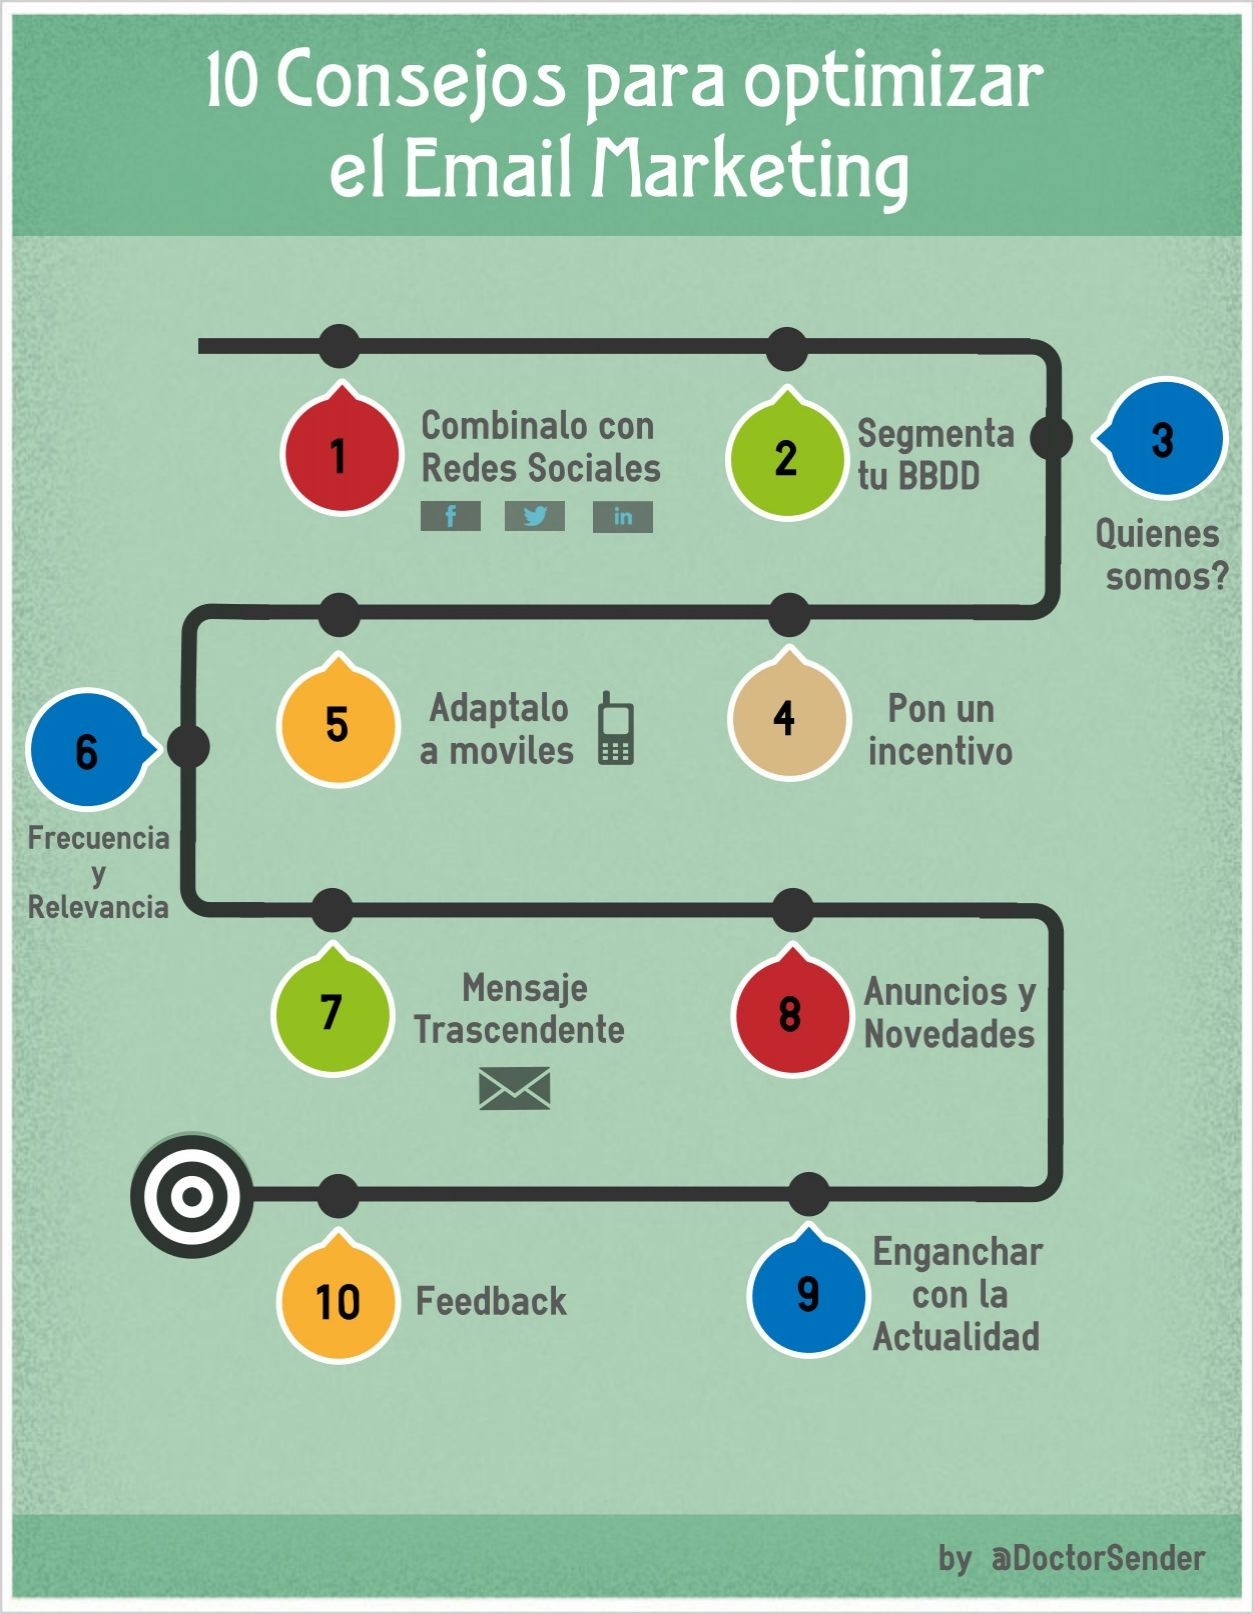 10 consejos para optimizar tu Email Marketing | #infografias #marketing #empresas #emprendedores #pymes #email